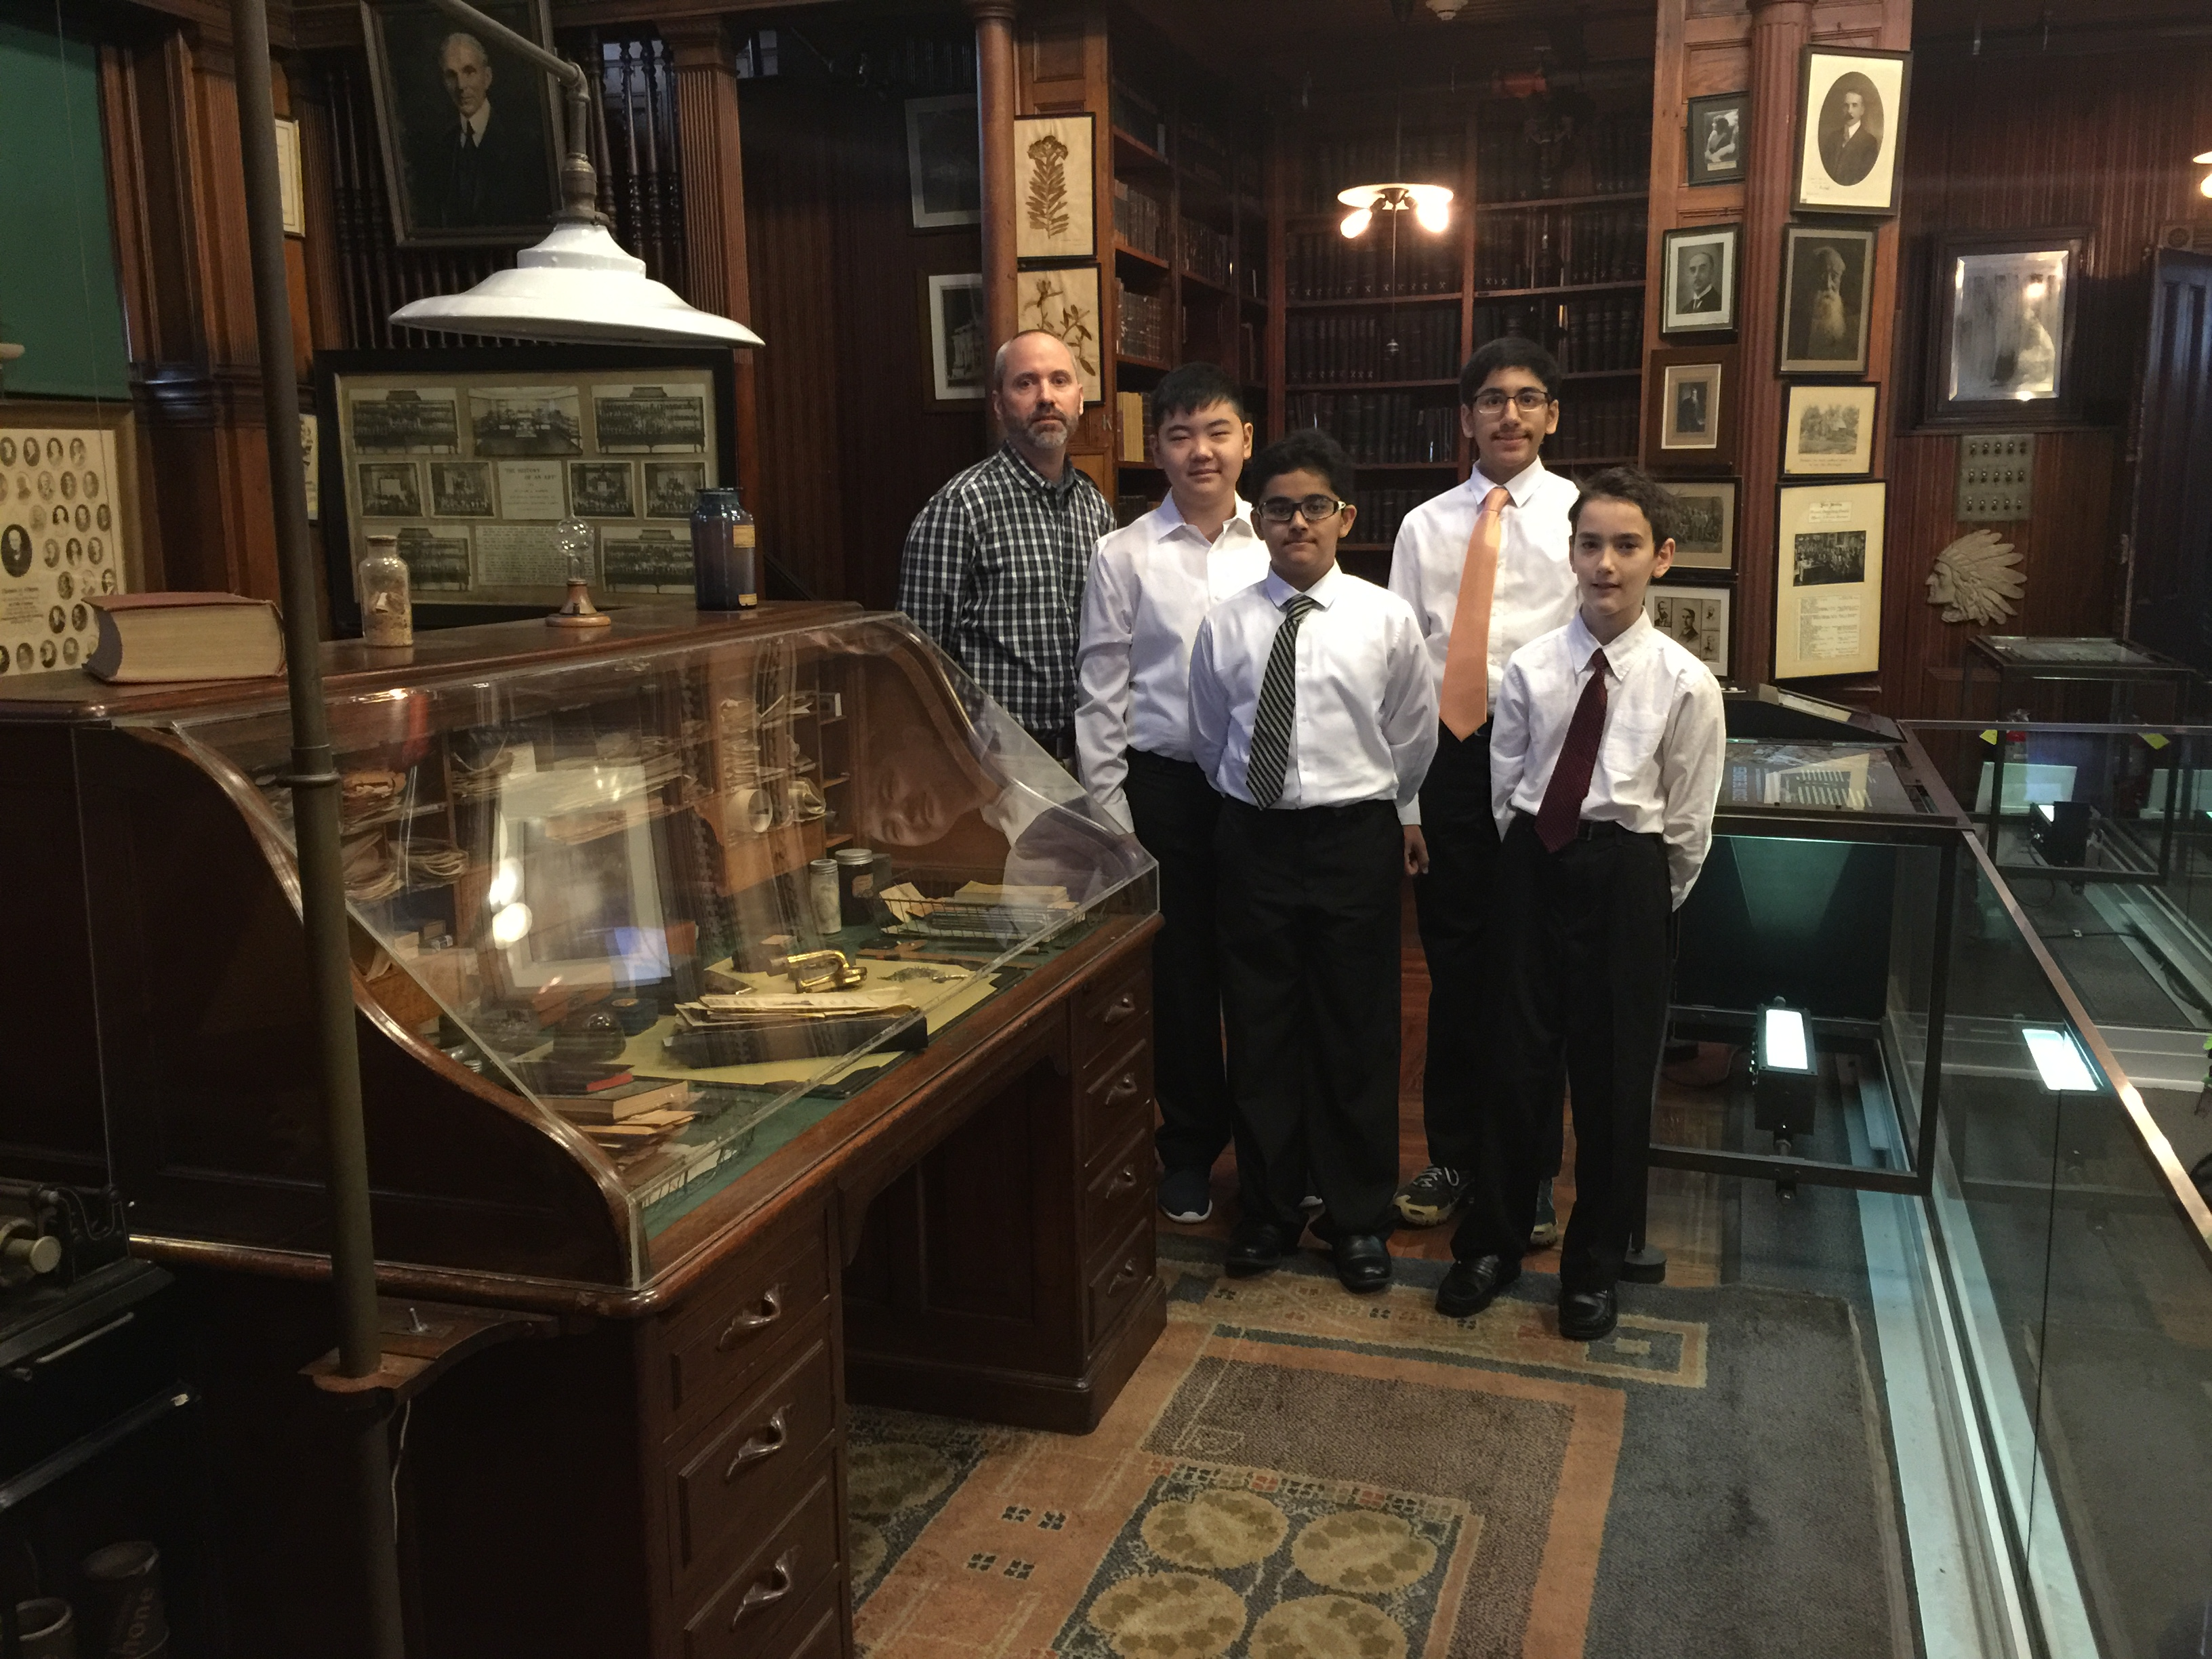 The winners and their teacher mentor pose near the historic desk of famed inventor Thomas Edison on display at TENHP.